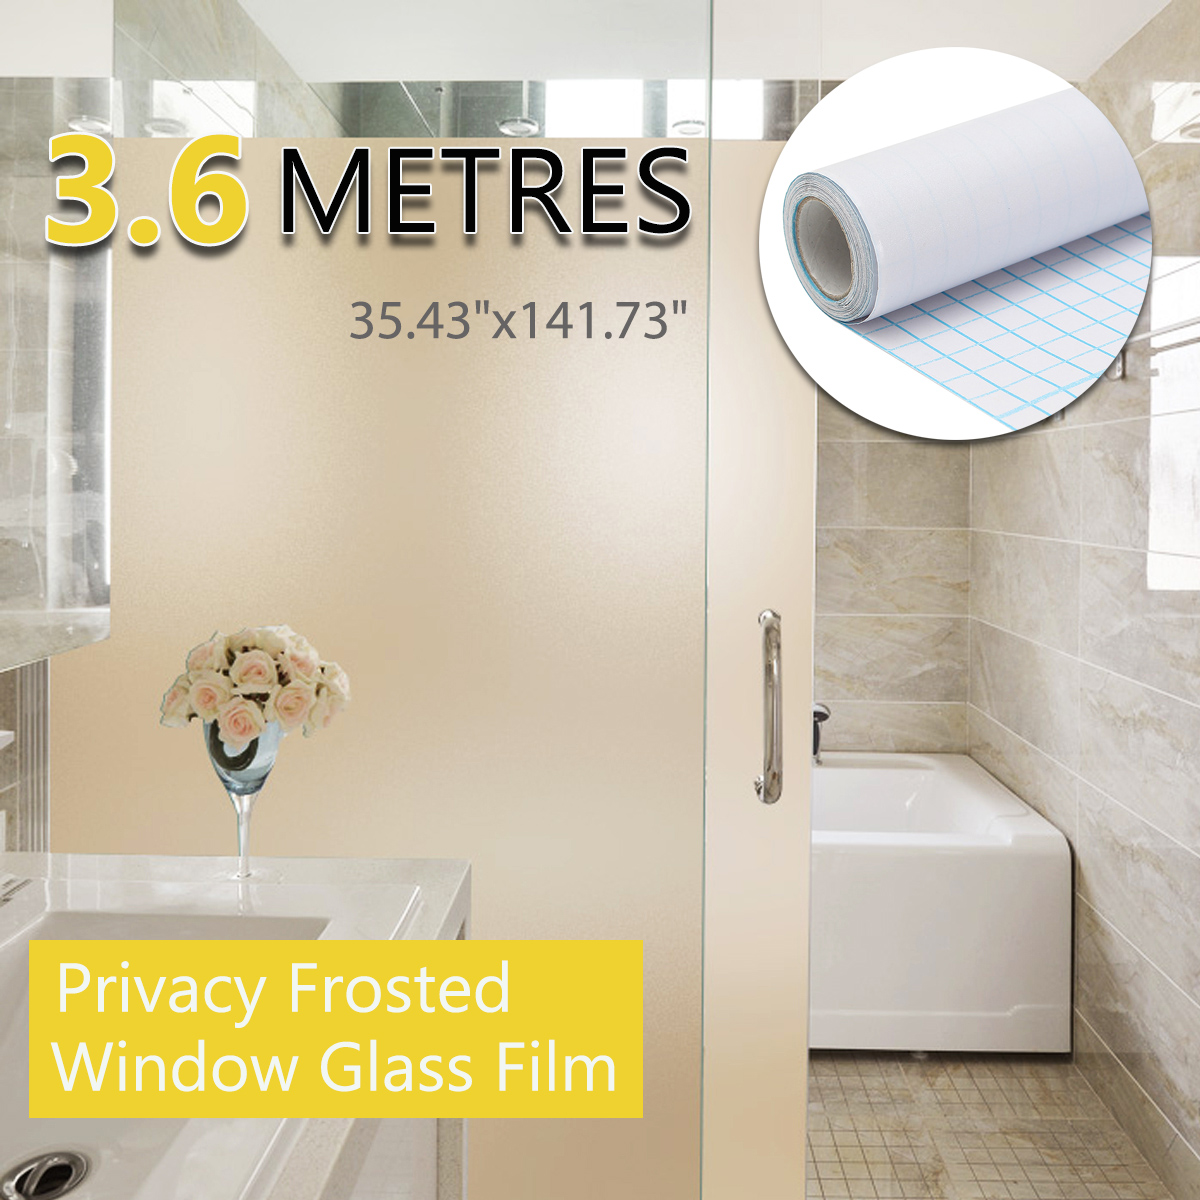 PVC Frosted Window Glass Film 90cm x 3.6m for Home Bathroom Office Pri vacy Pritection DIY Frosted Decorative Glass Films